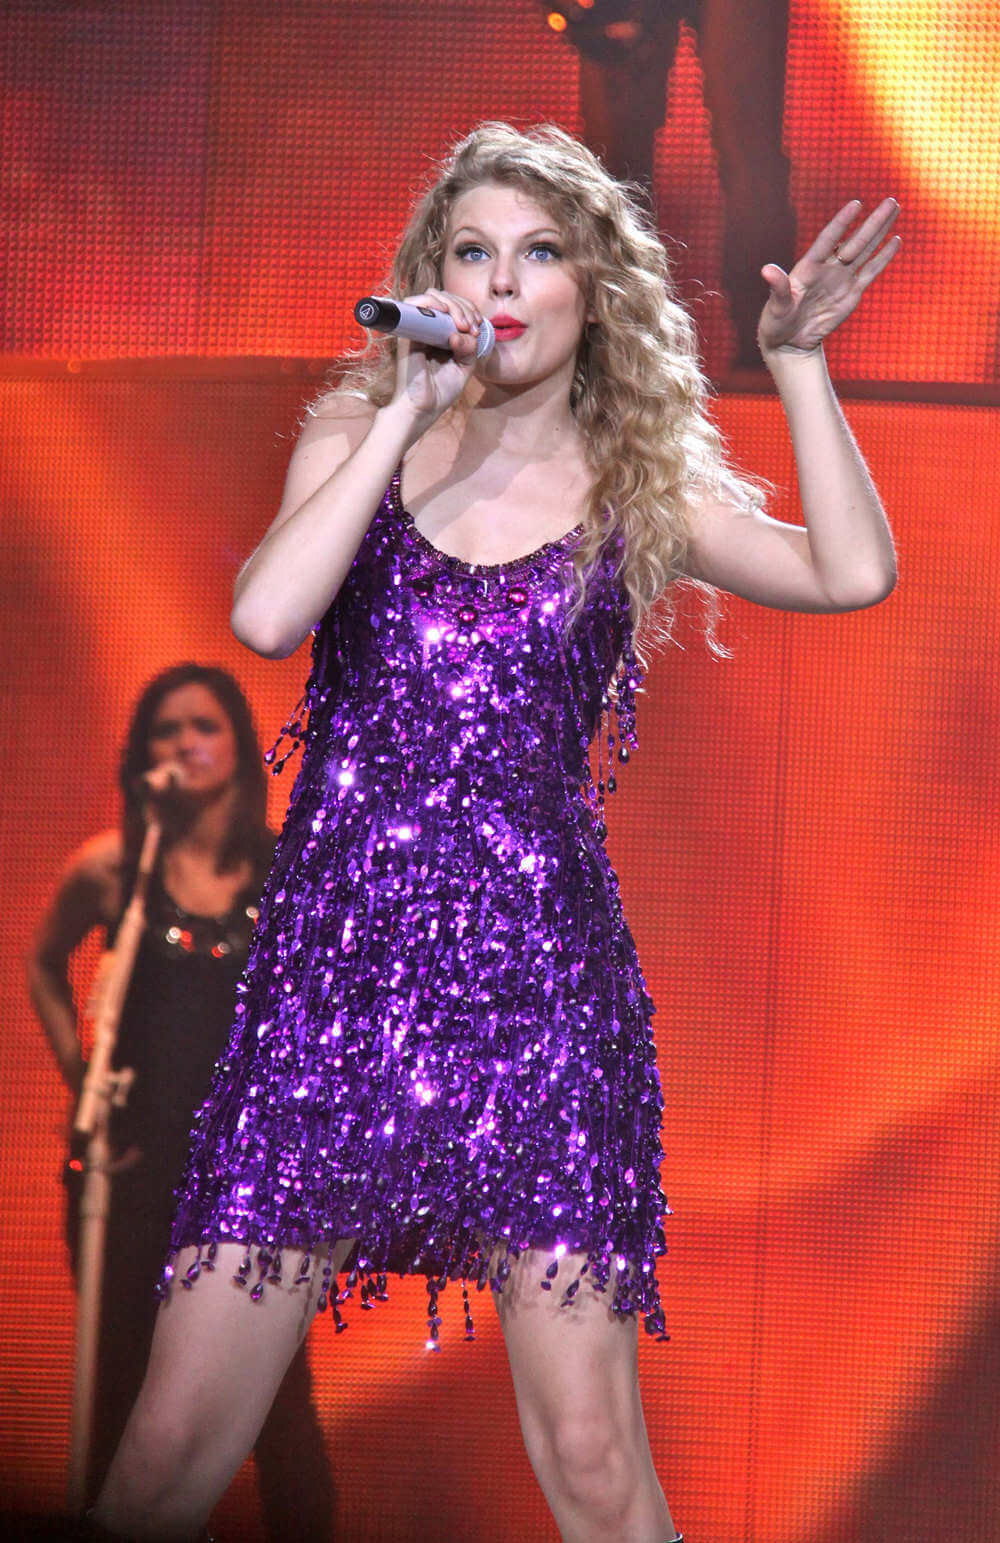 taylor swift the way i loved you bella belle